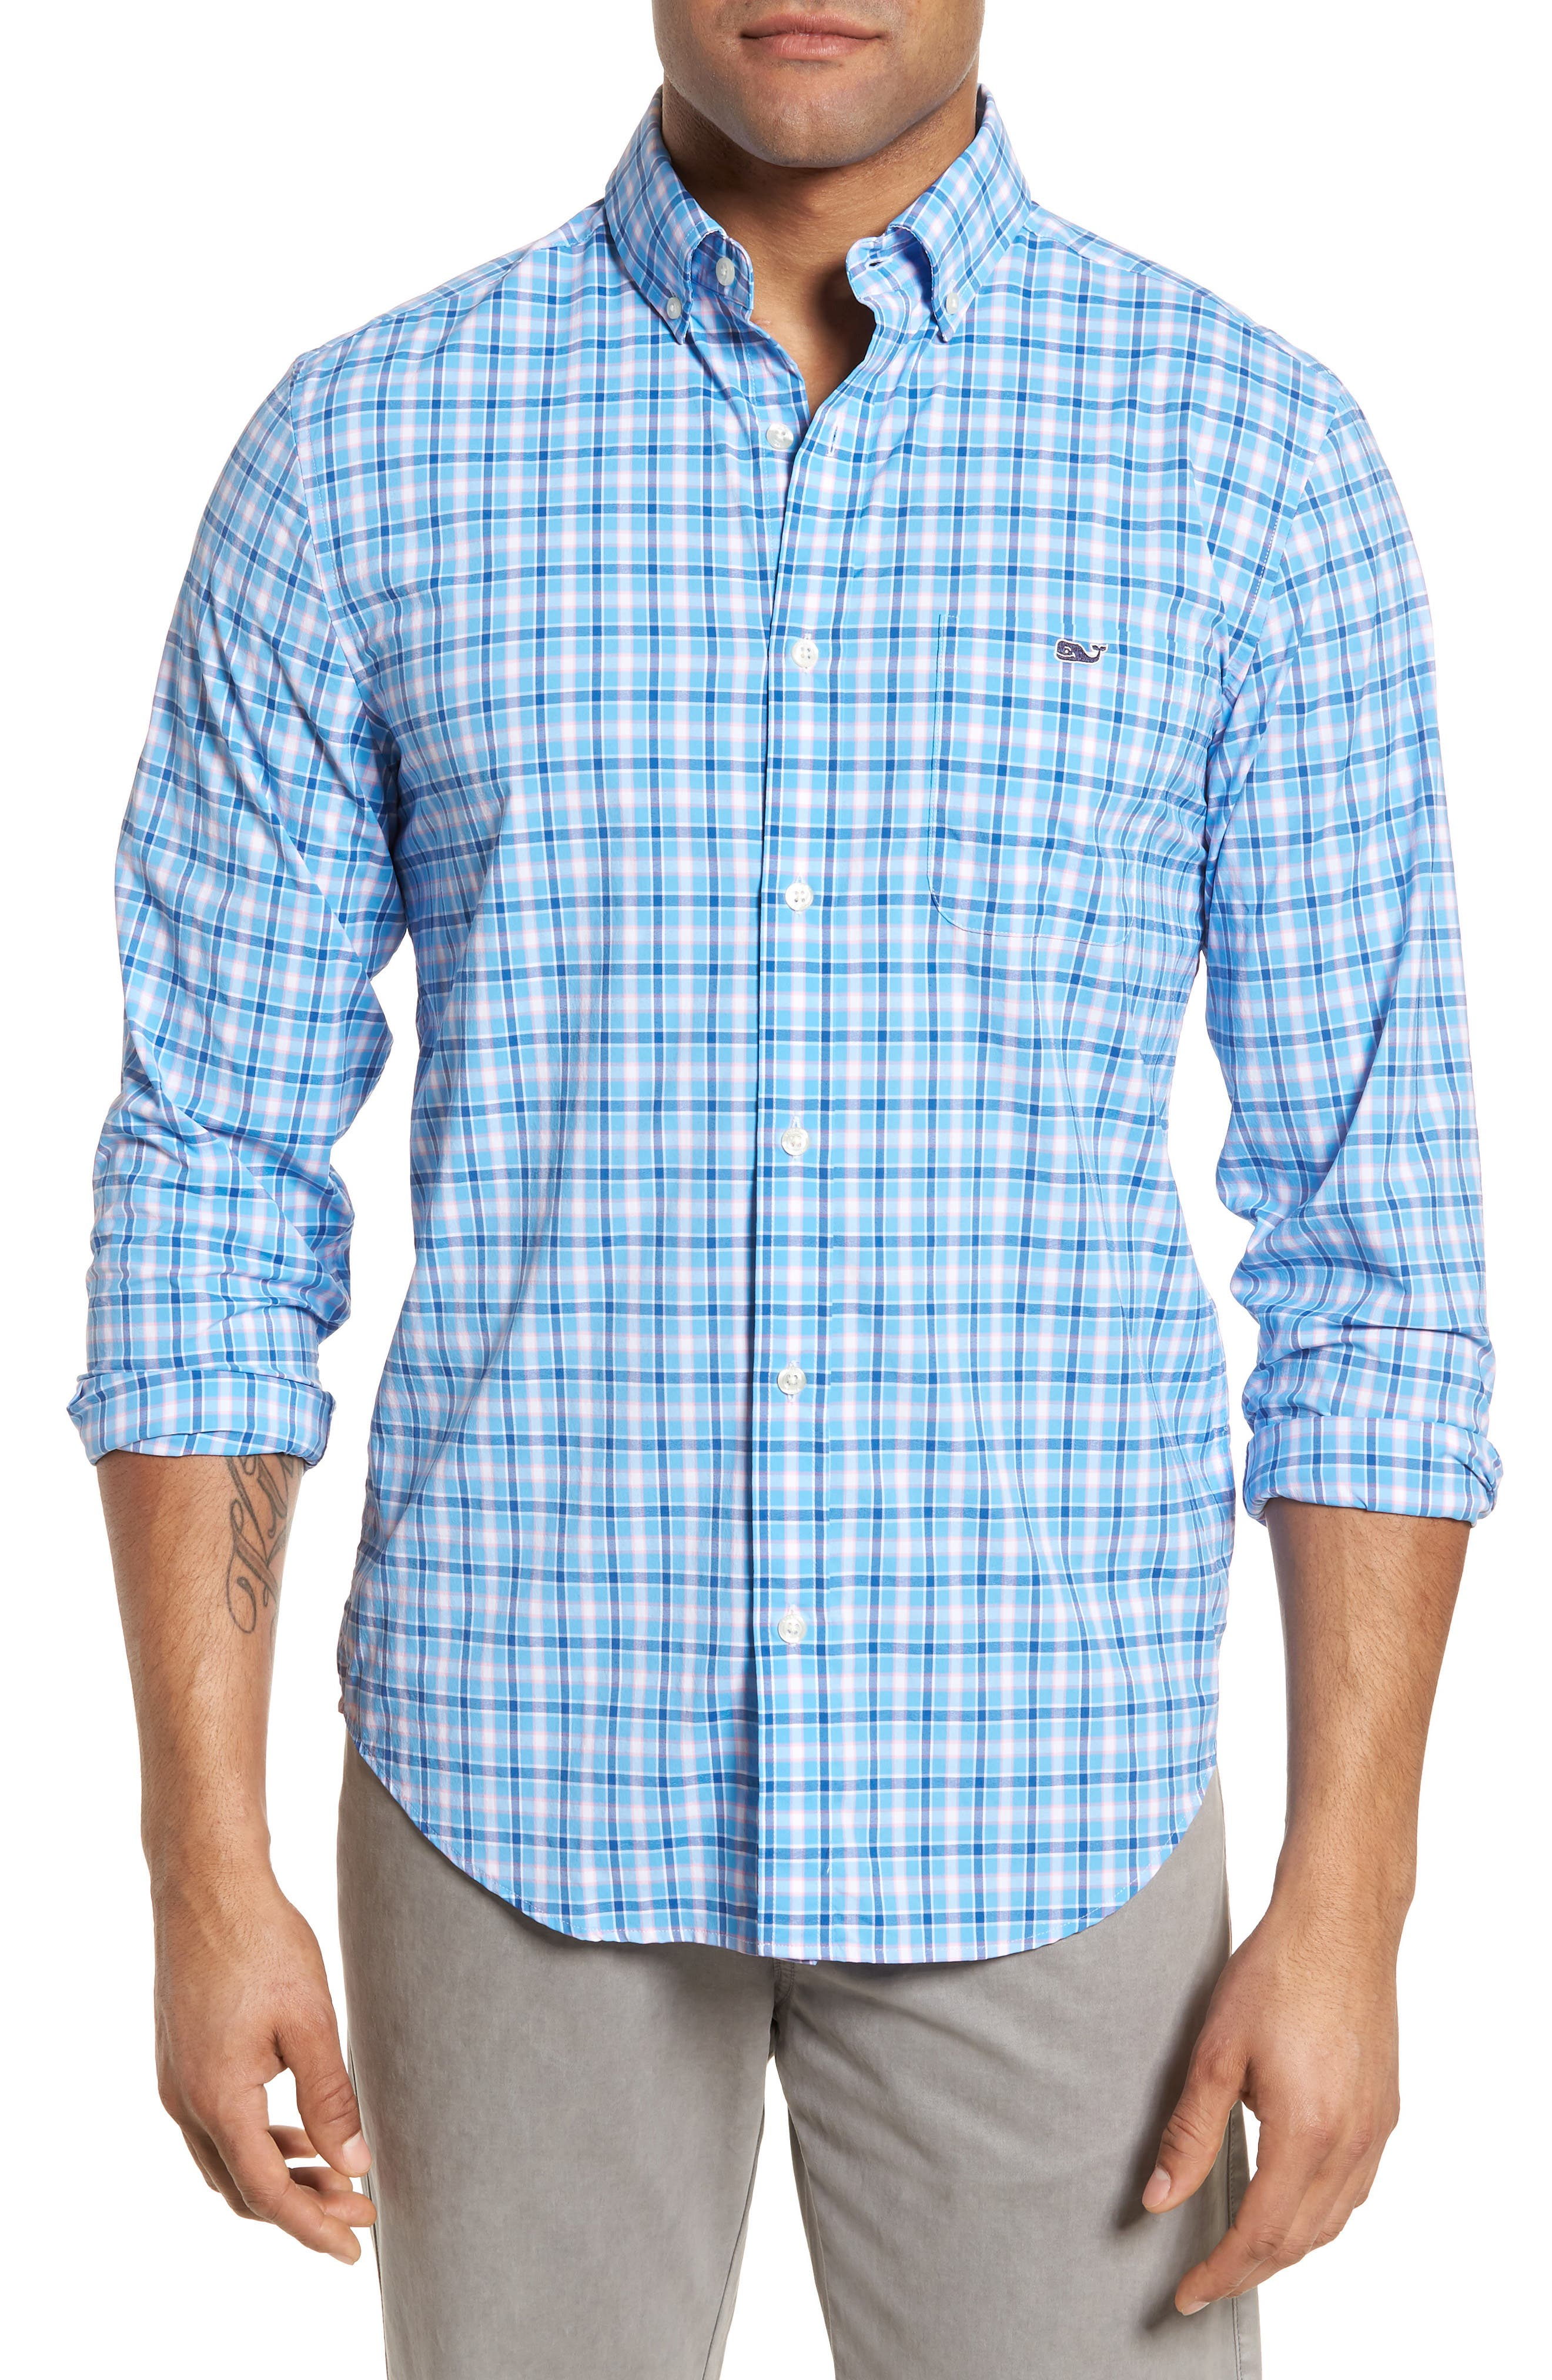 Alternate Image 1 Selected - vineyard vines Lyford Cay Classic Fit Stretch Check Sport Shirt